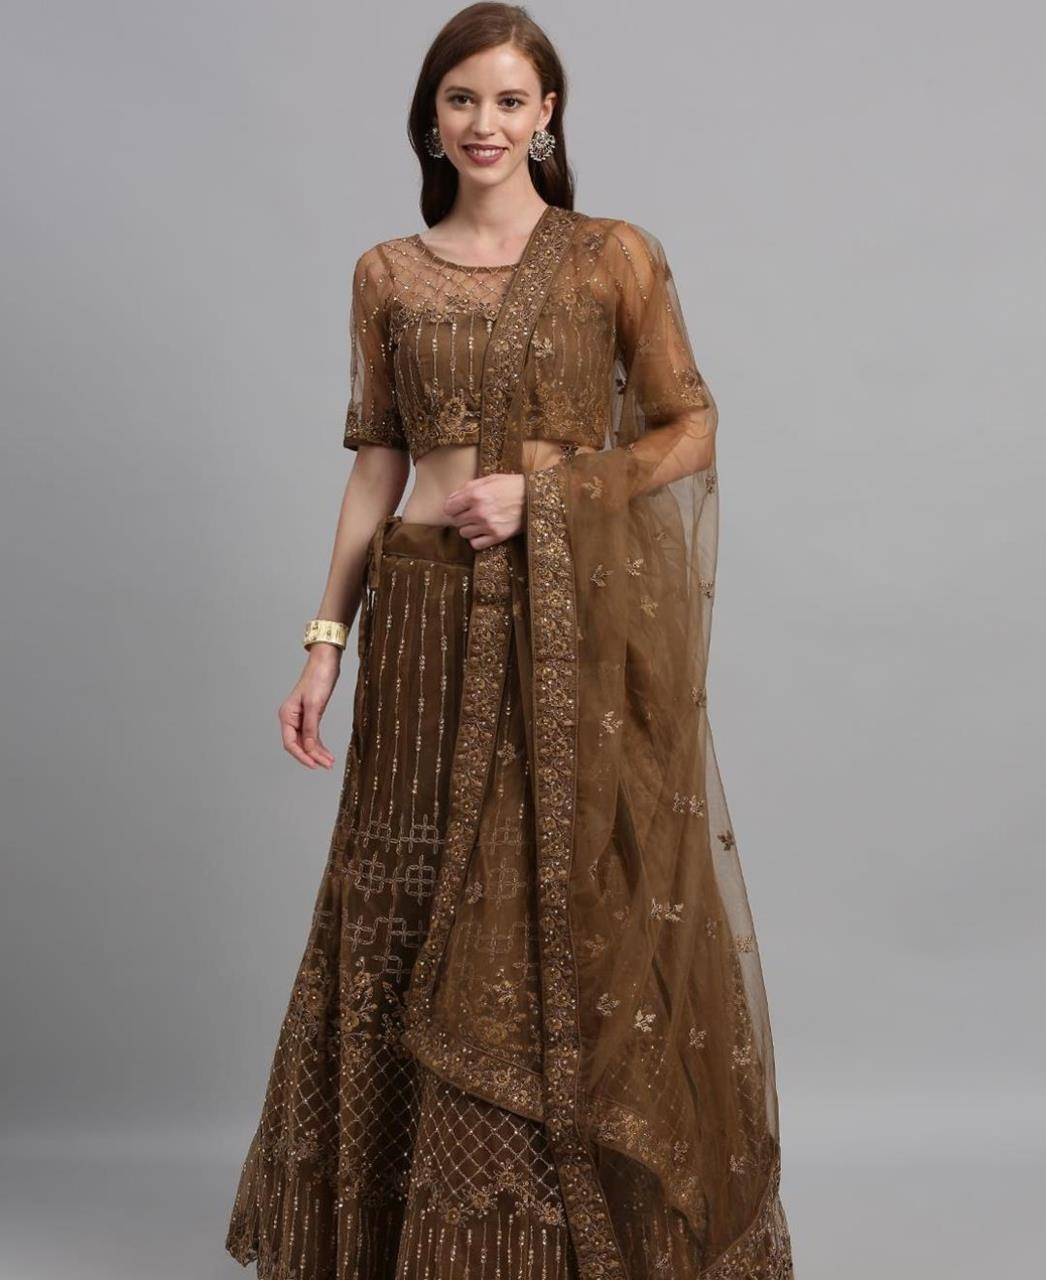 Net Lehenga in Brown